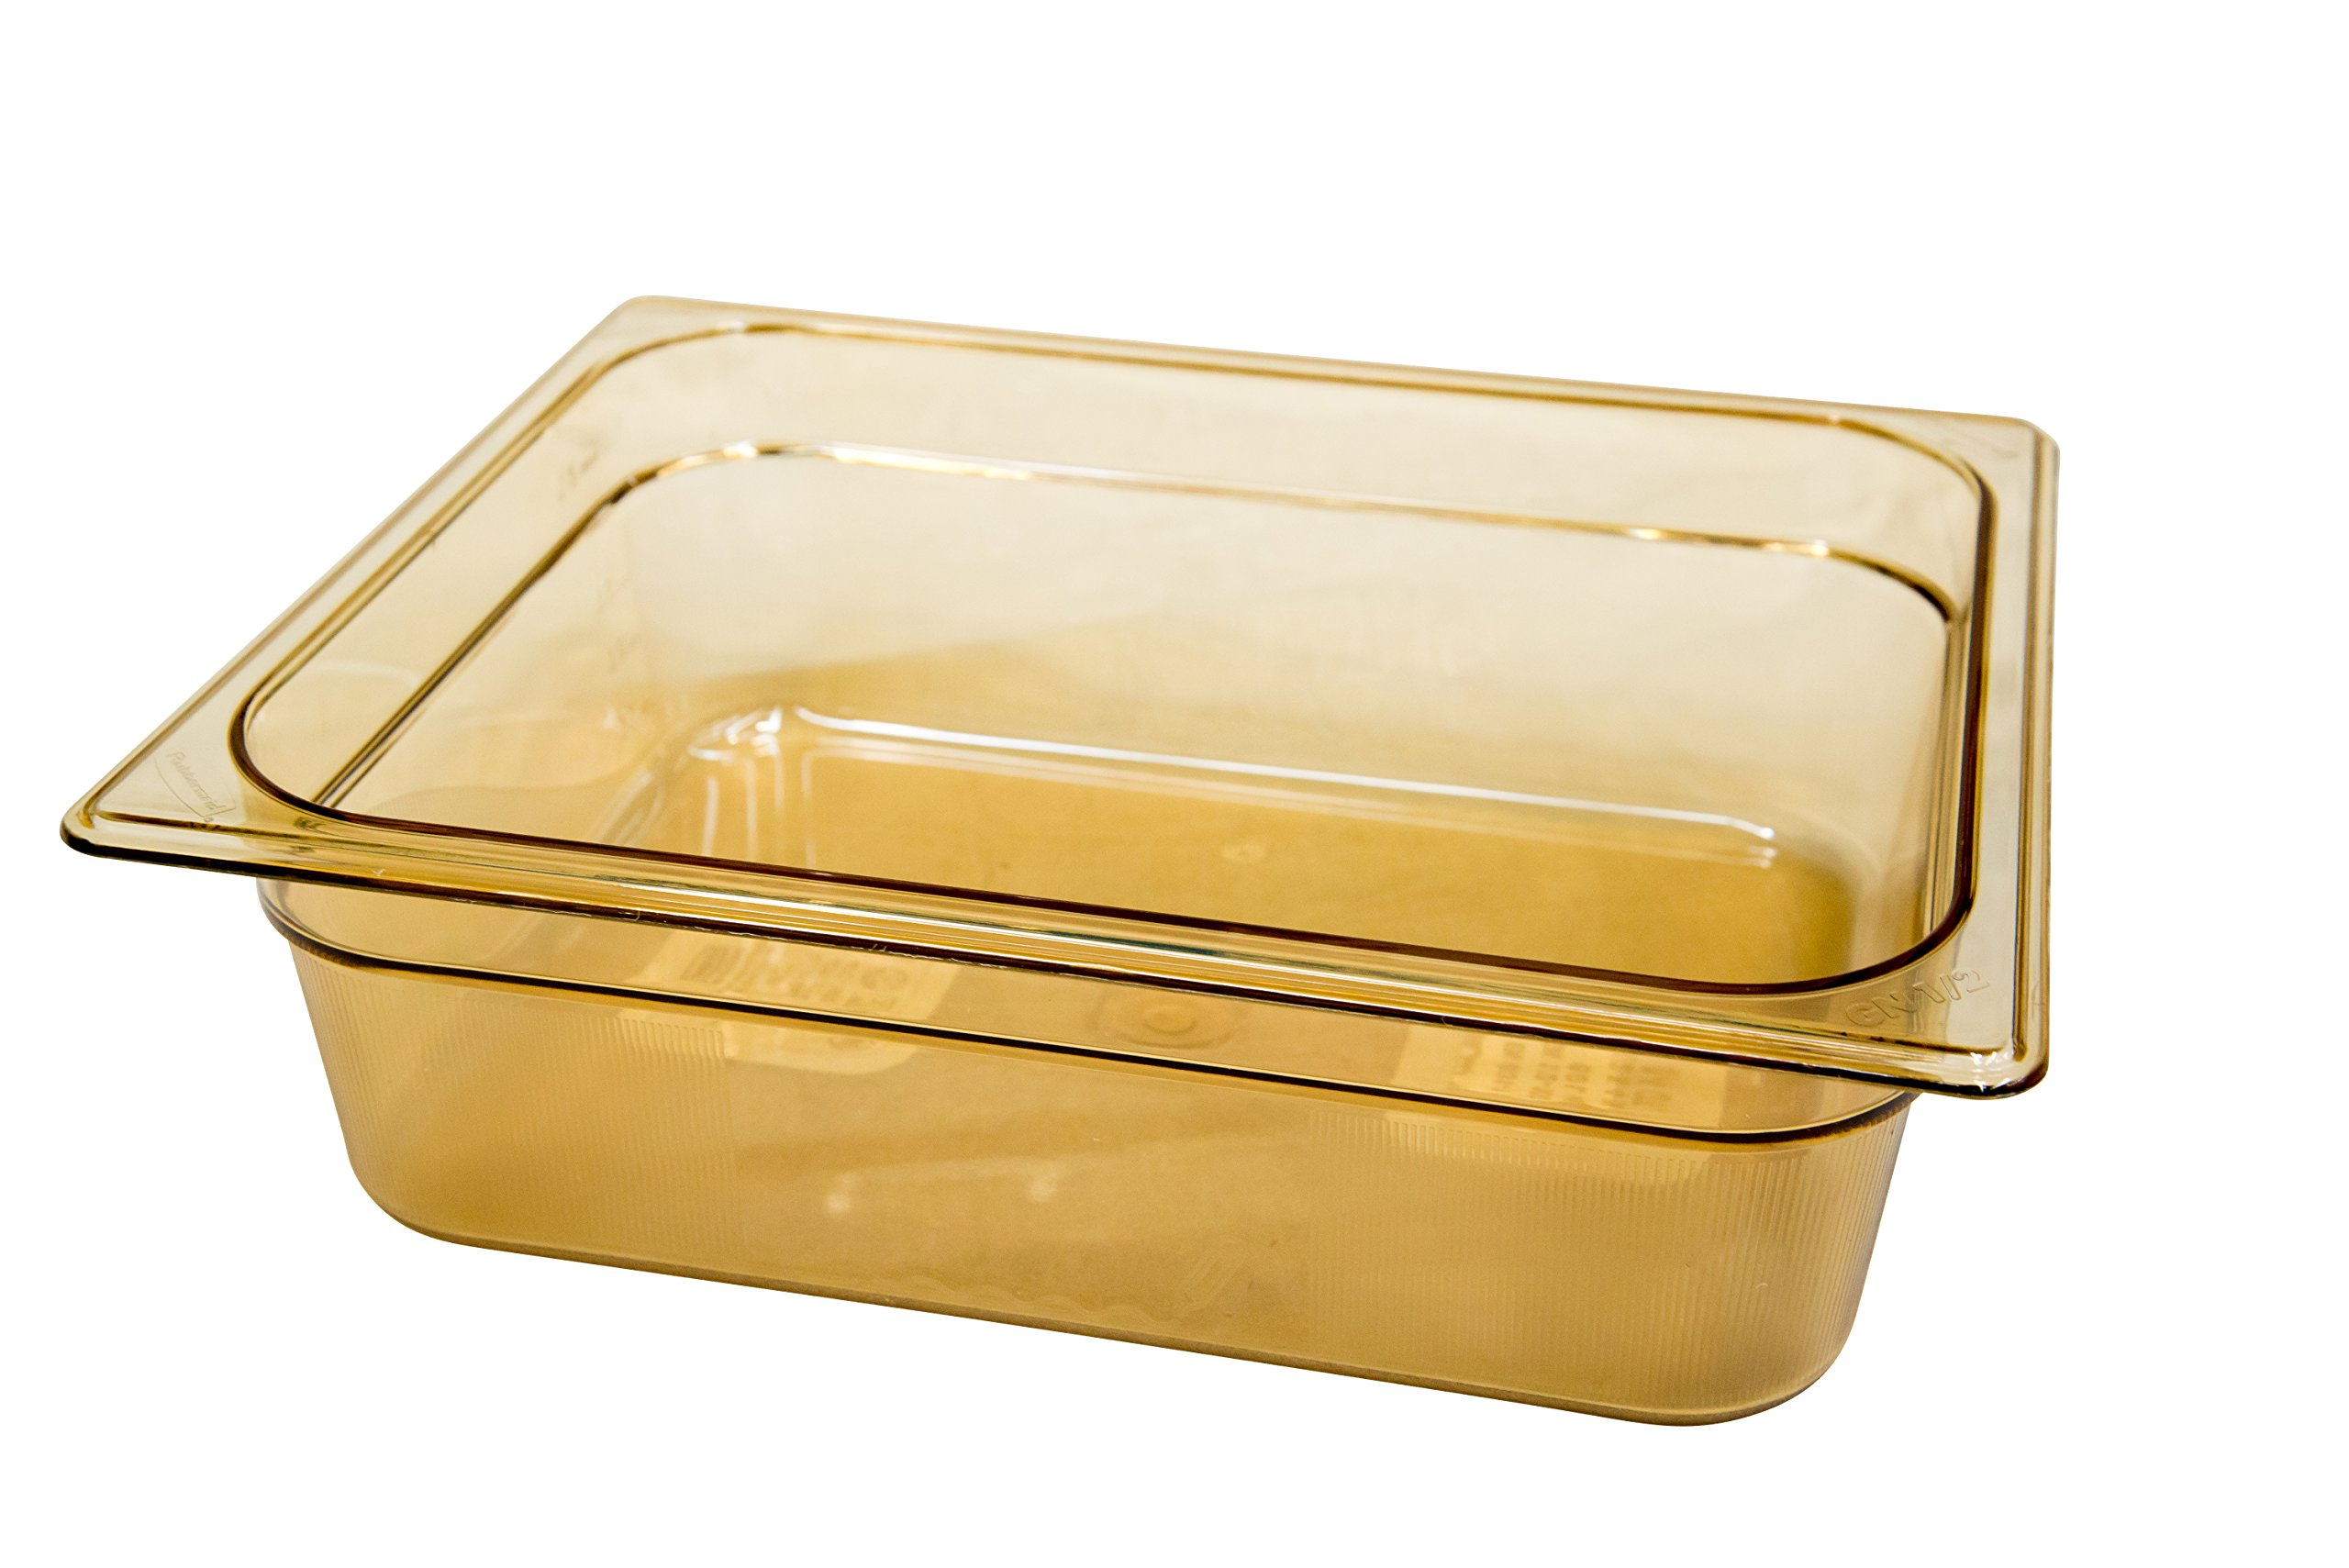 Rubbermaid Commercial Hot Food Pan, 1/2 Size, Amber, FG224P00AMBR